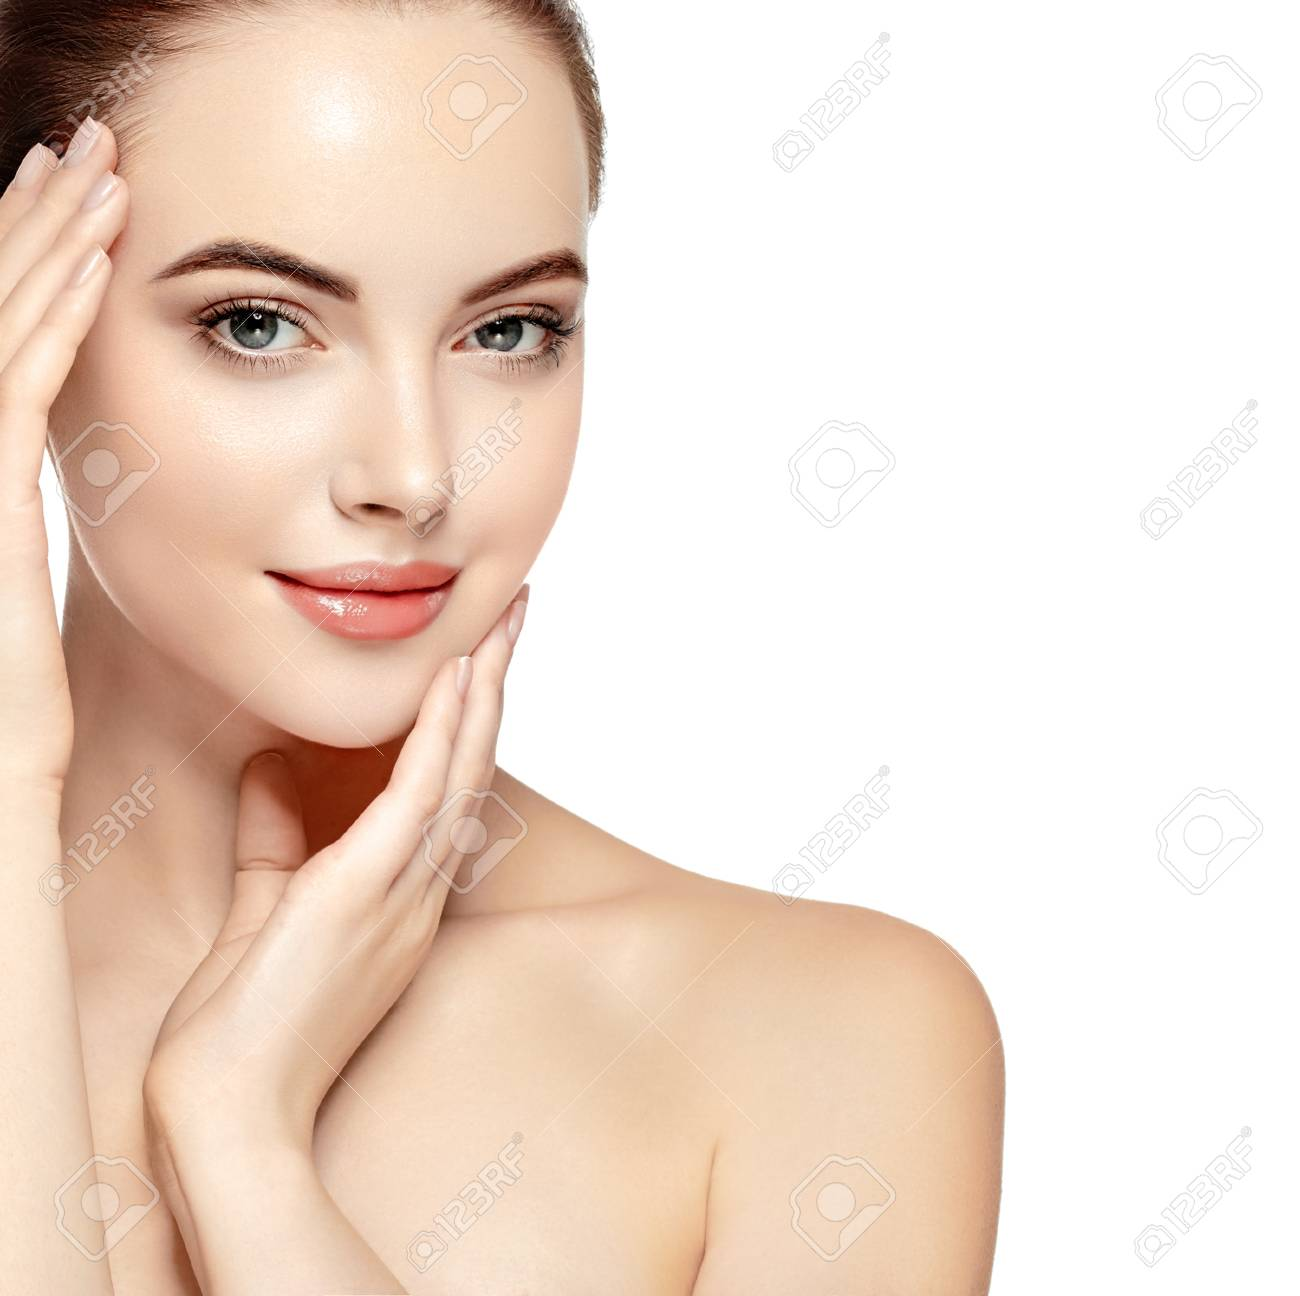 Beautiful Woman Face Portrait Beauty Skin Care Concept Fashion Stock Photo Picture And Royalty Free Image Image 79159462